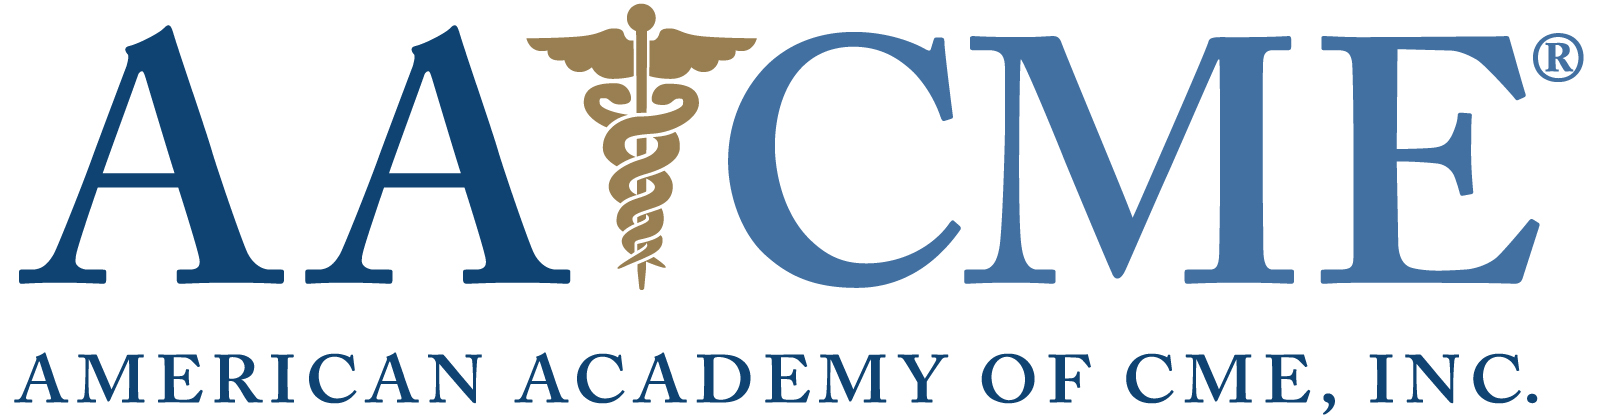 American Academy of CME, Inc.